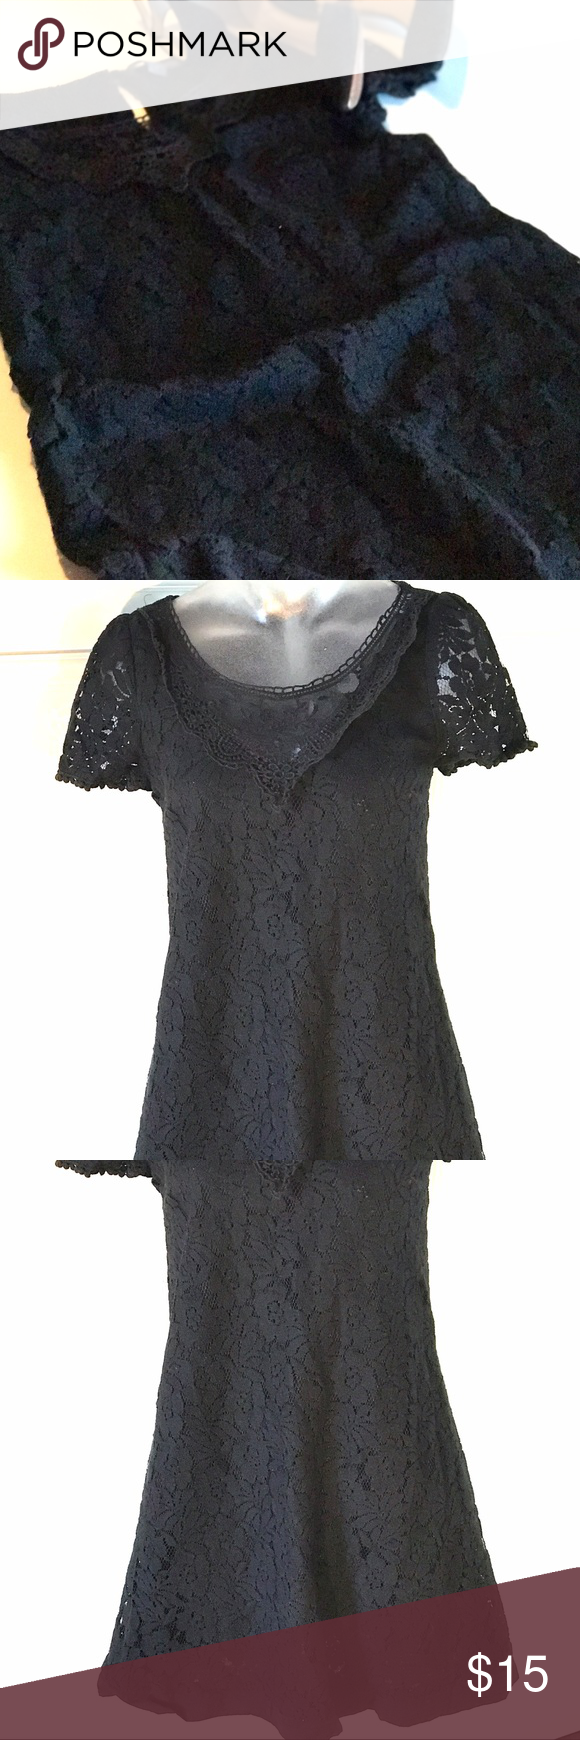 perfect for date night black lace dress